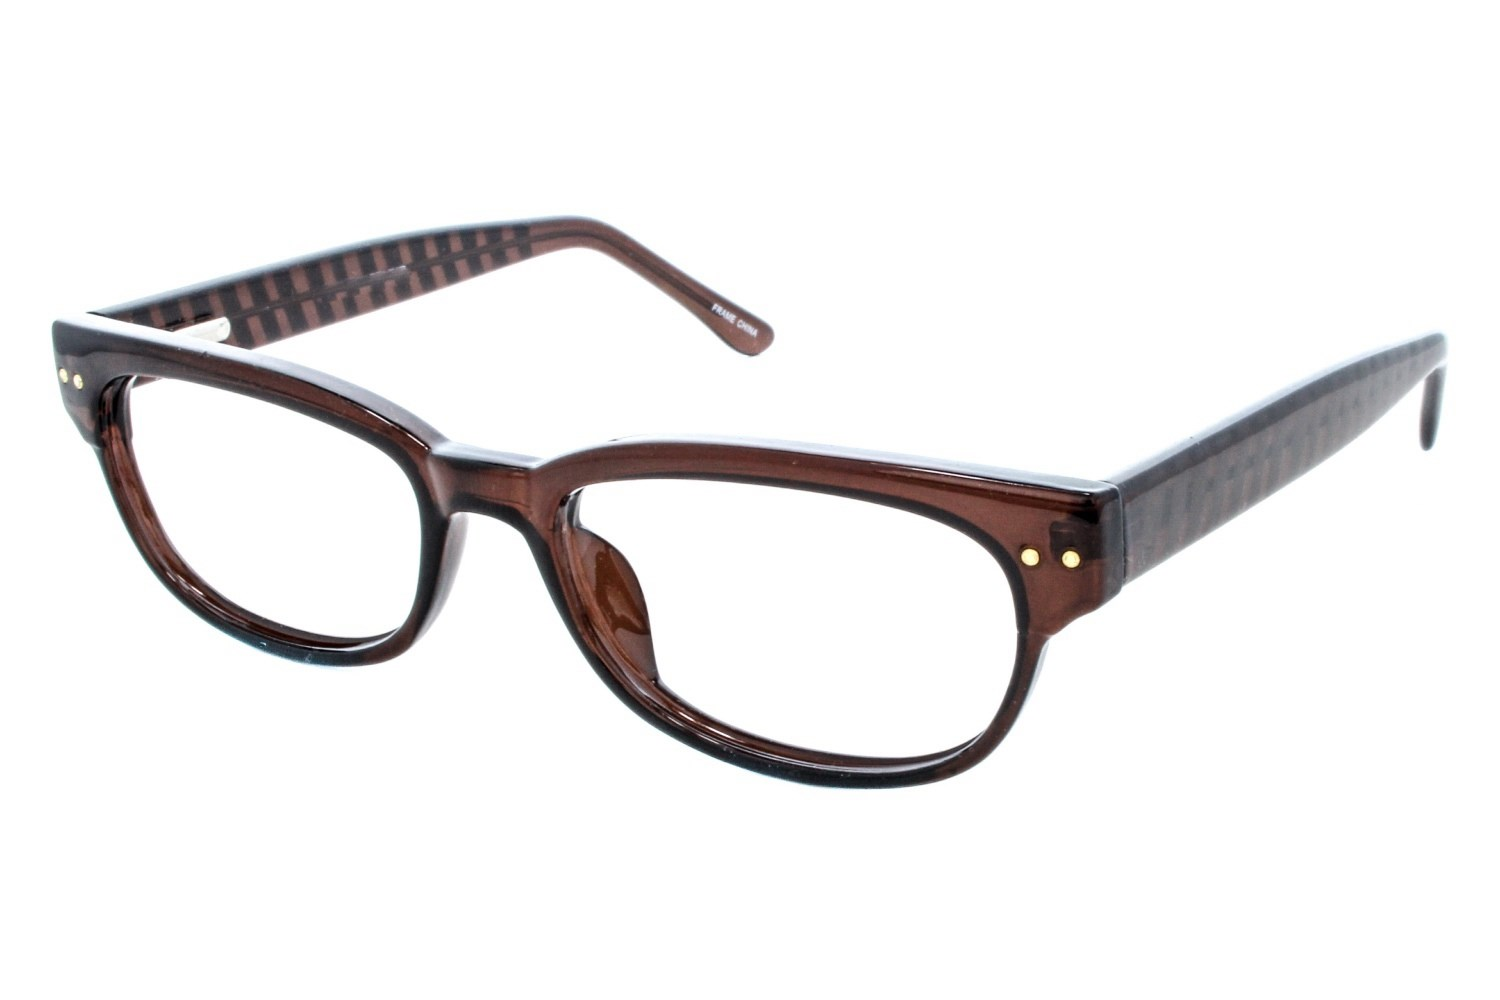 Eyeglass Frame Lookup : Eyeglasses - Product Search